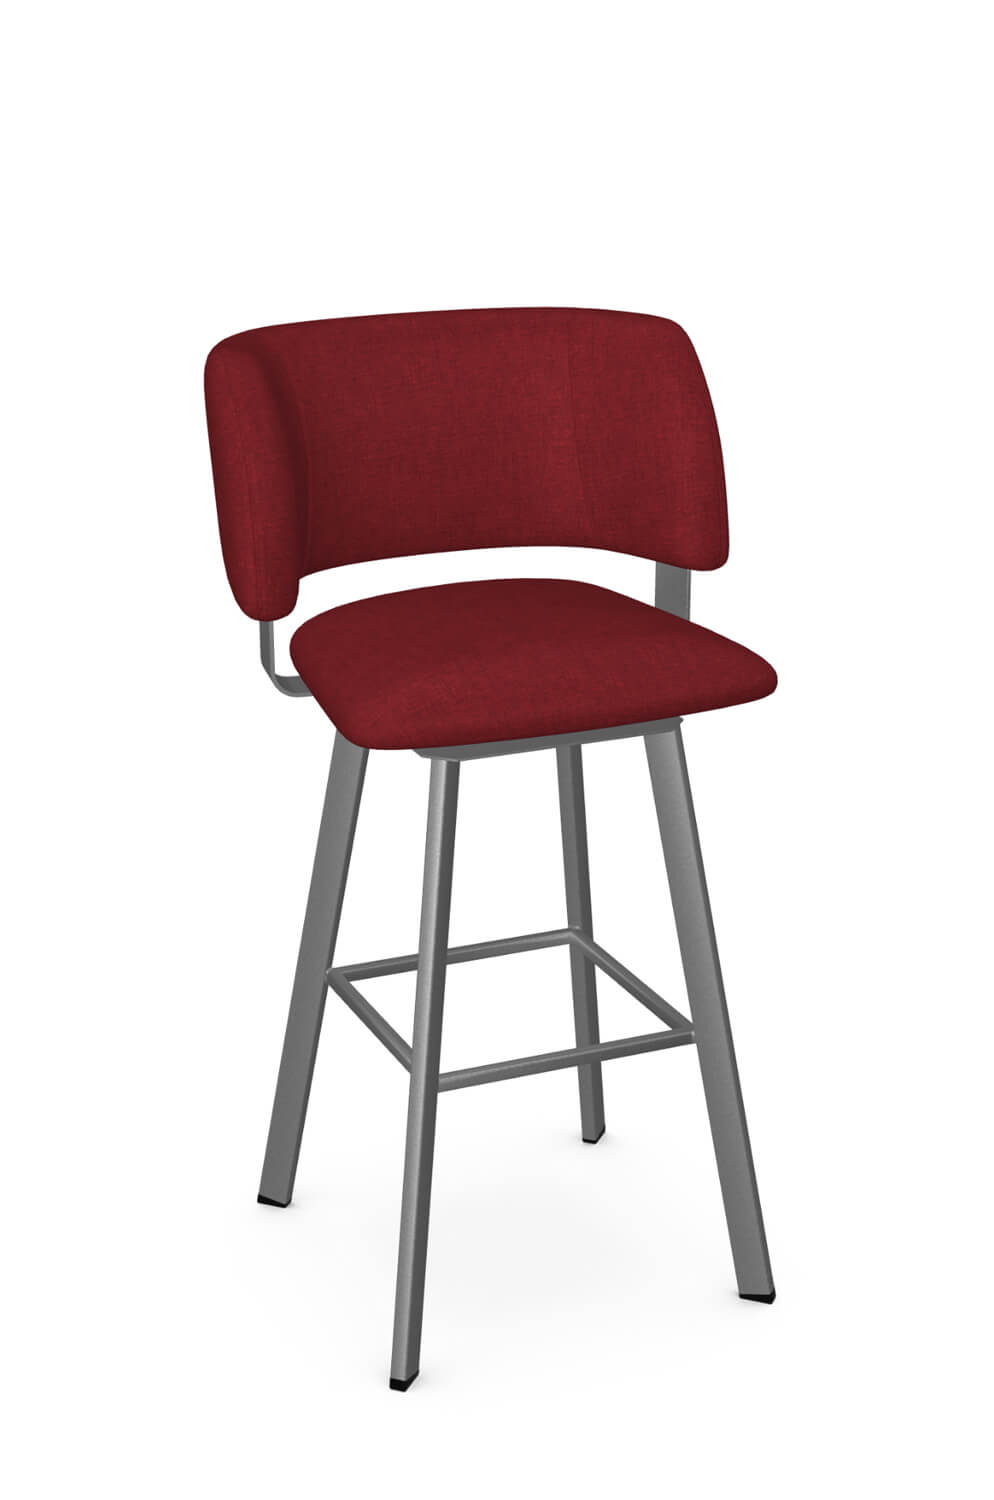 Amisco's Easton Swivel Stool with Upholstered Back and Seat